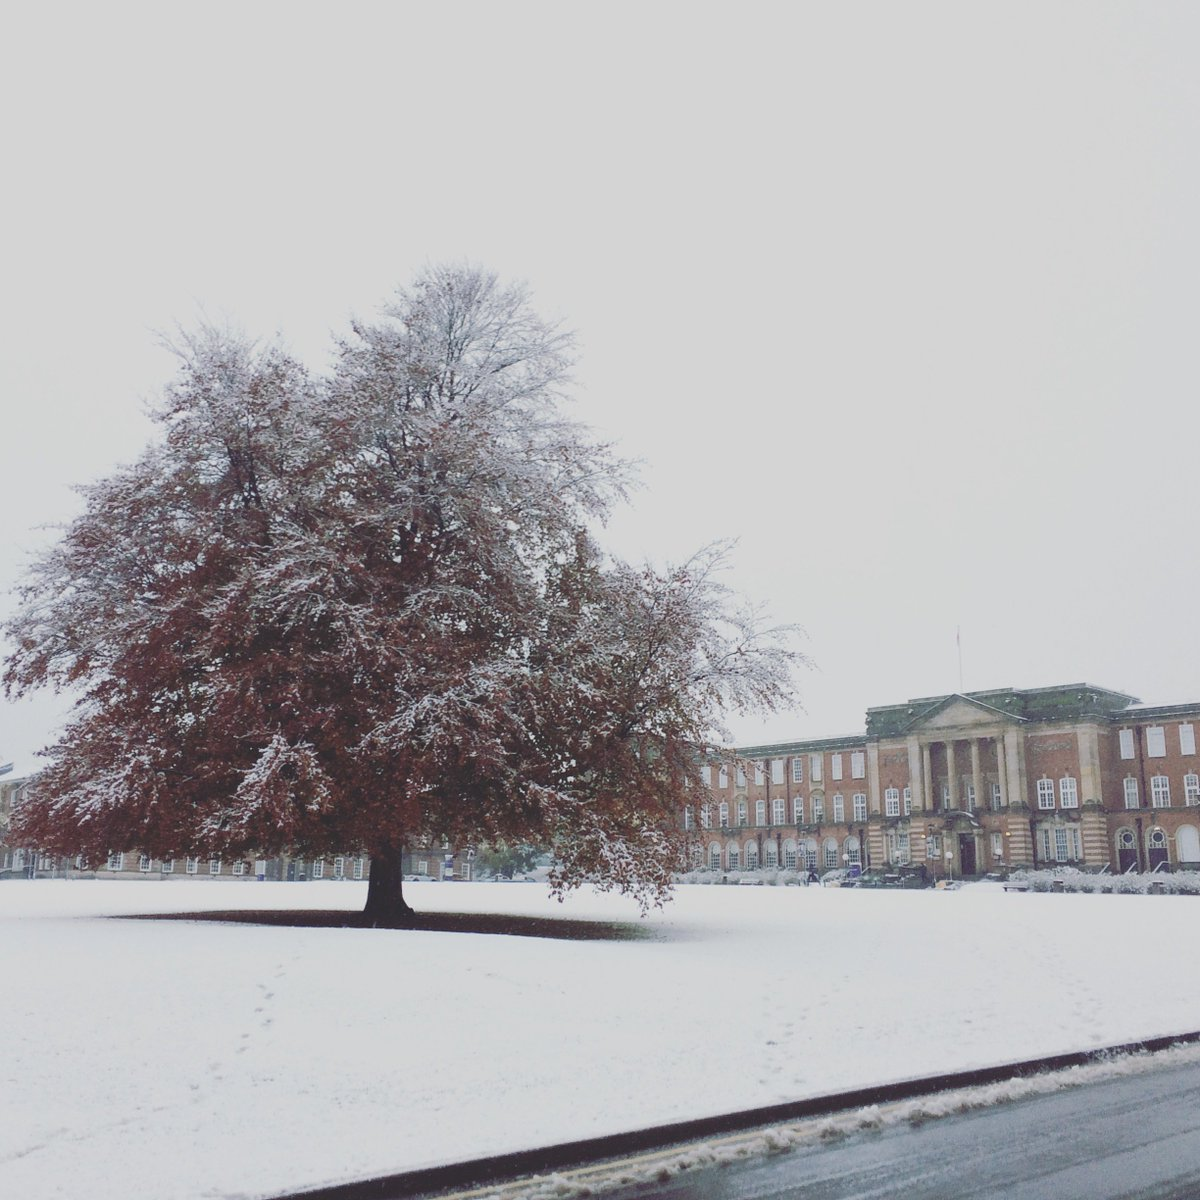 The view on our Headingley Campus this morning! https://t.co/NIqXuehGcB